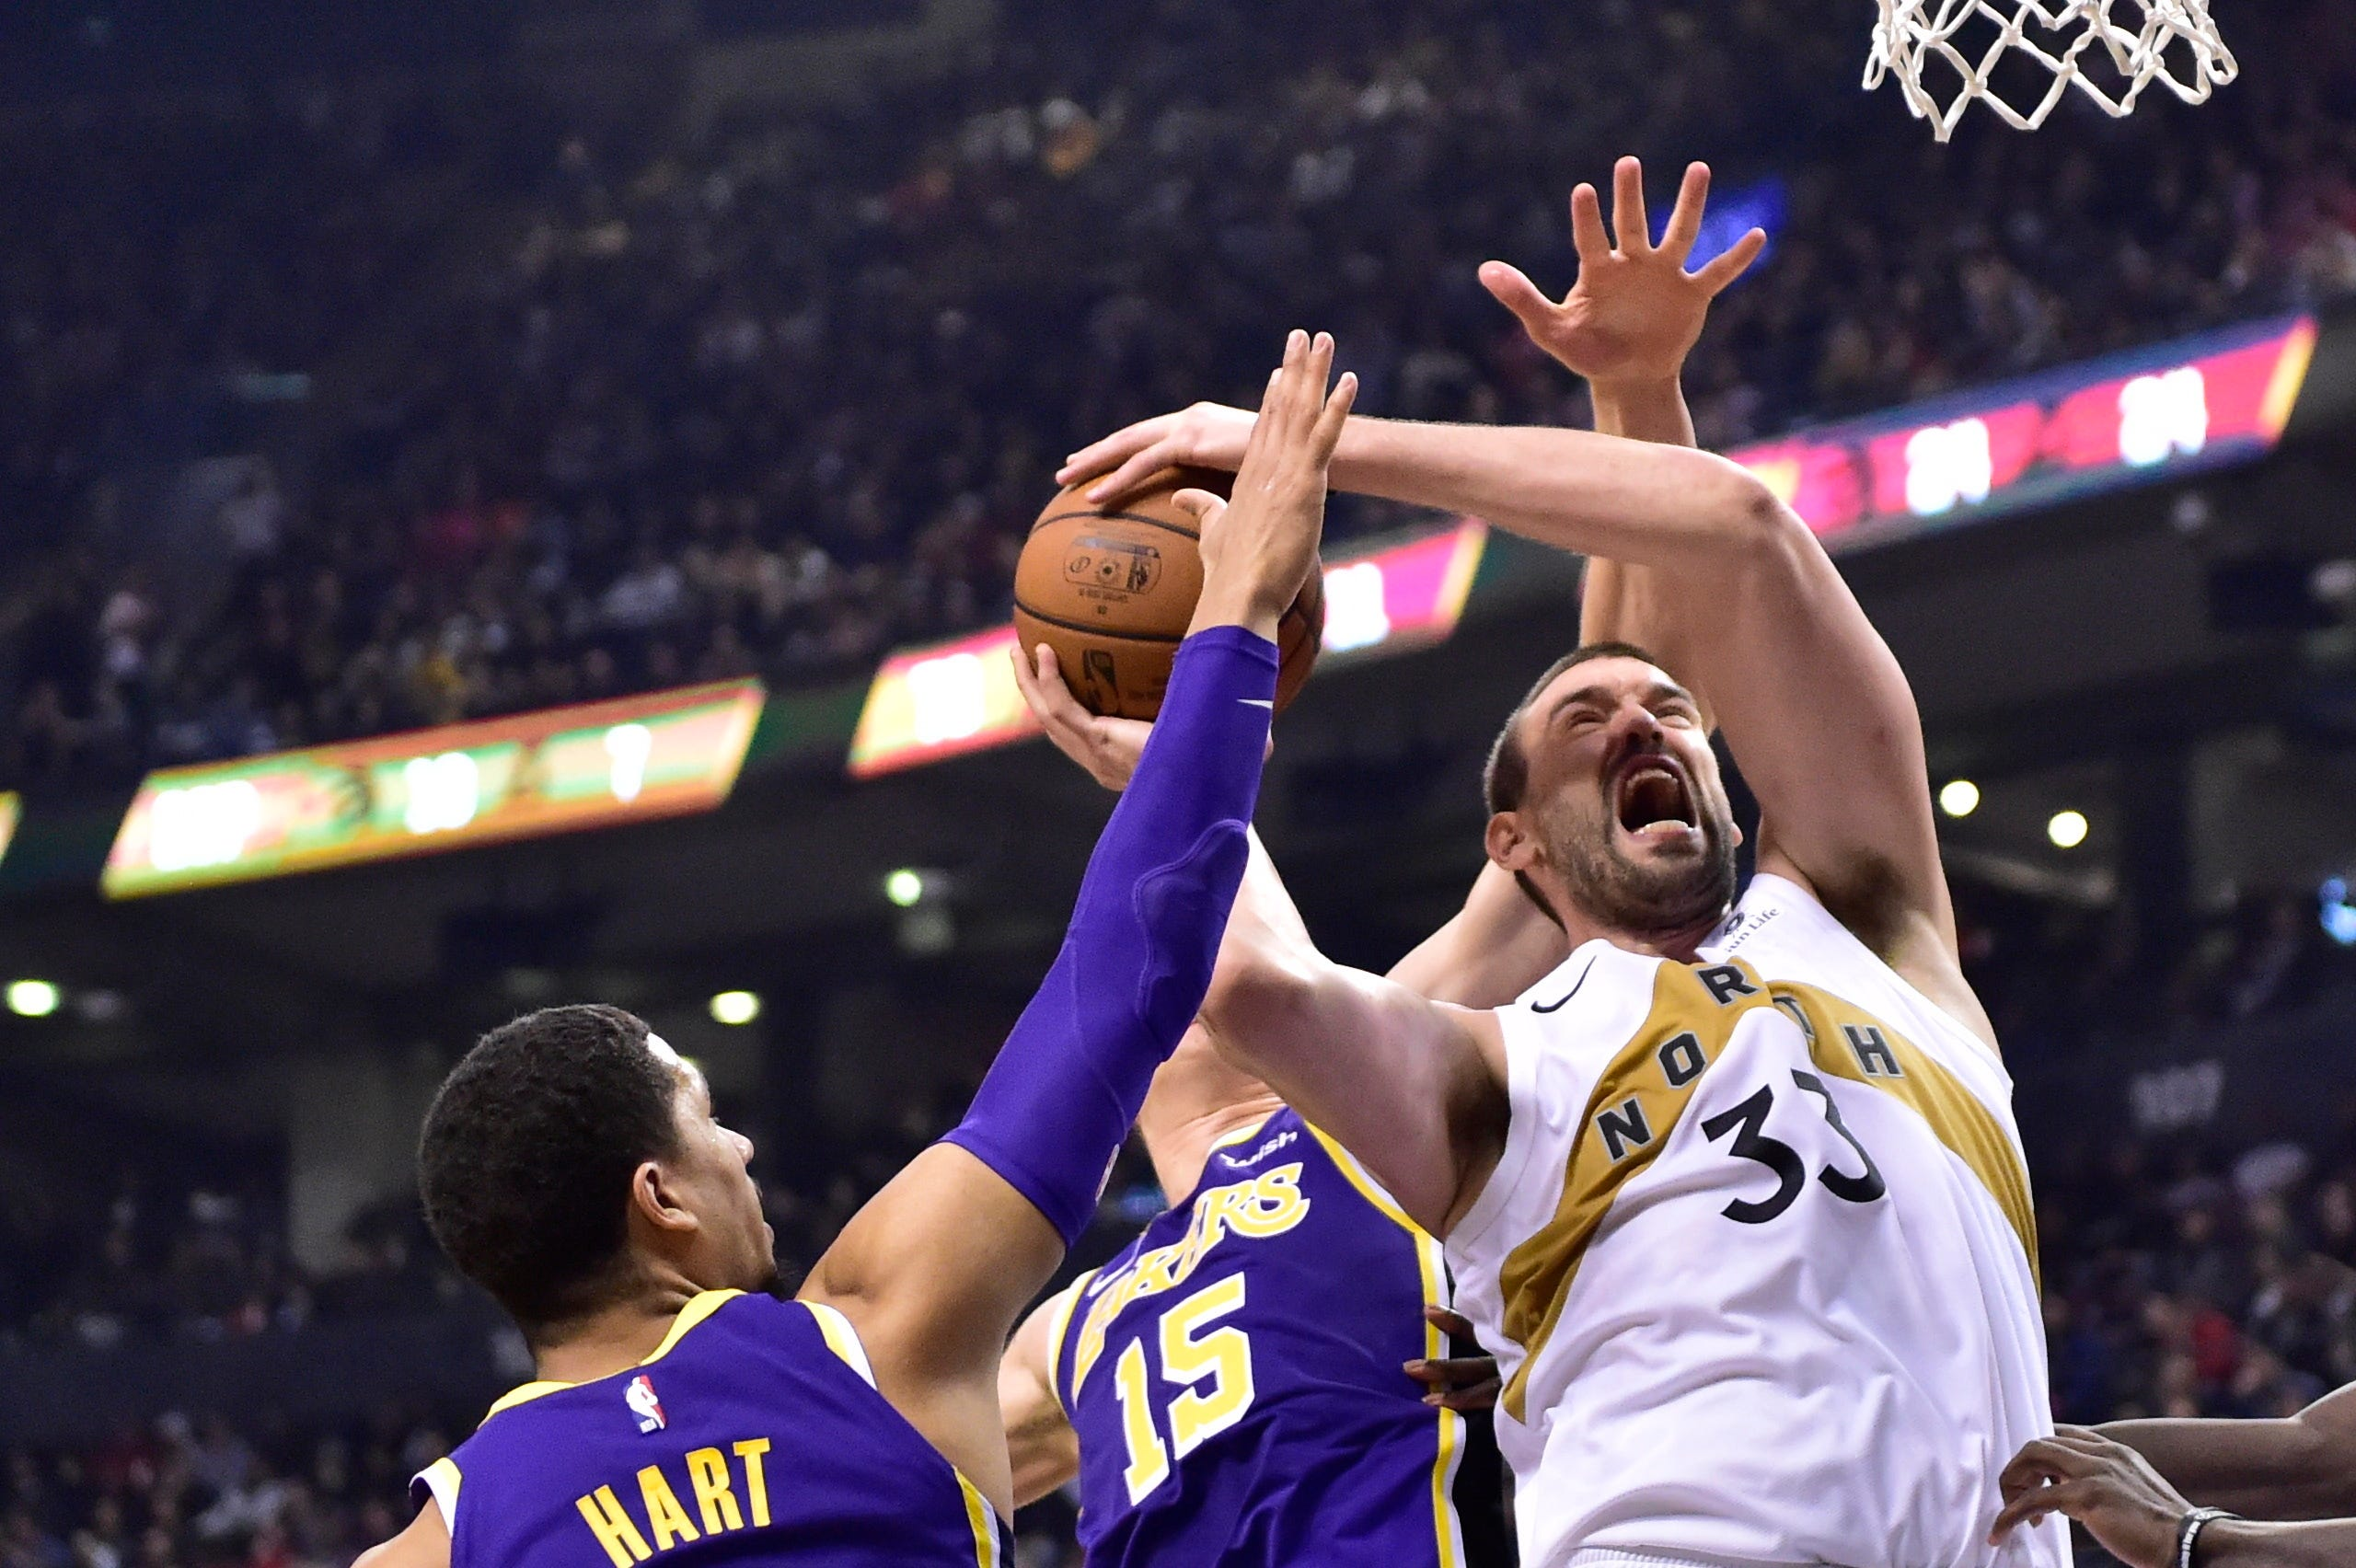 Kawhi Leonard scores 25 points, Raptors beat Lakers 111-98